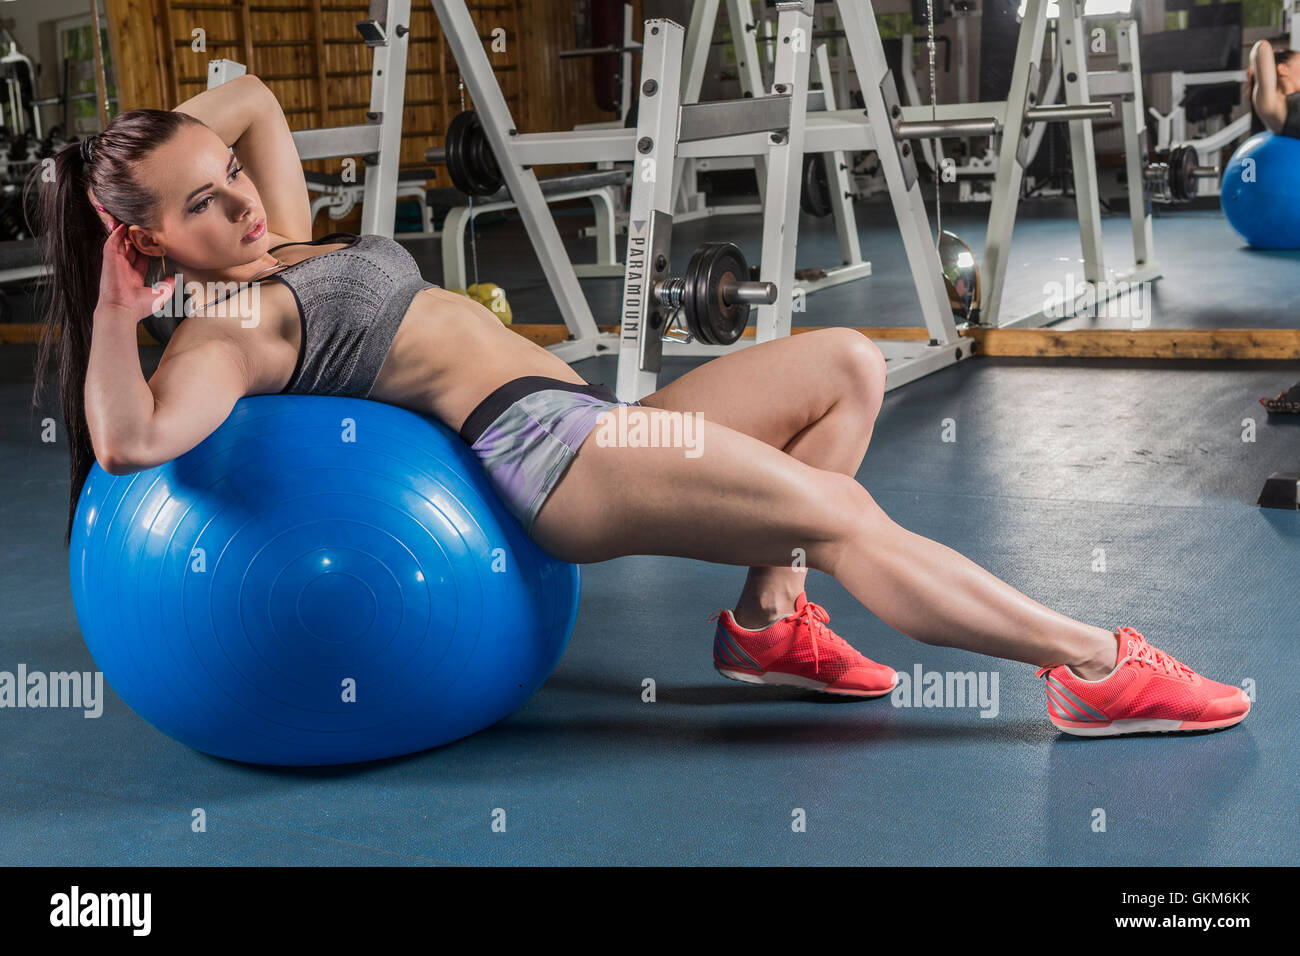 A muscular young women working out (or exercising) in a gym with an exercise ball - Stock Image